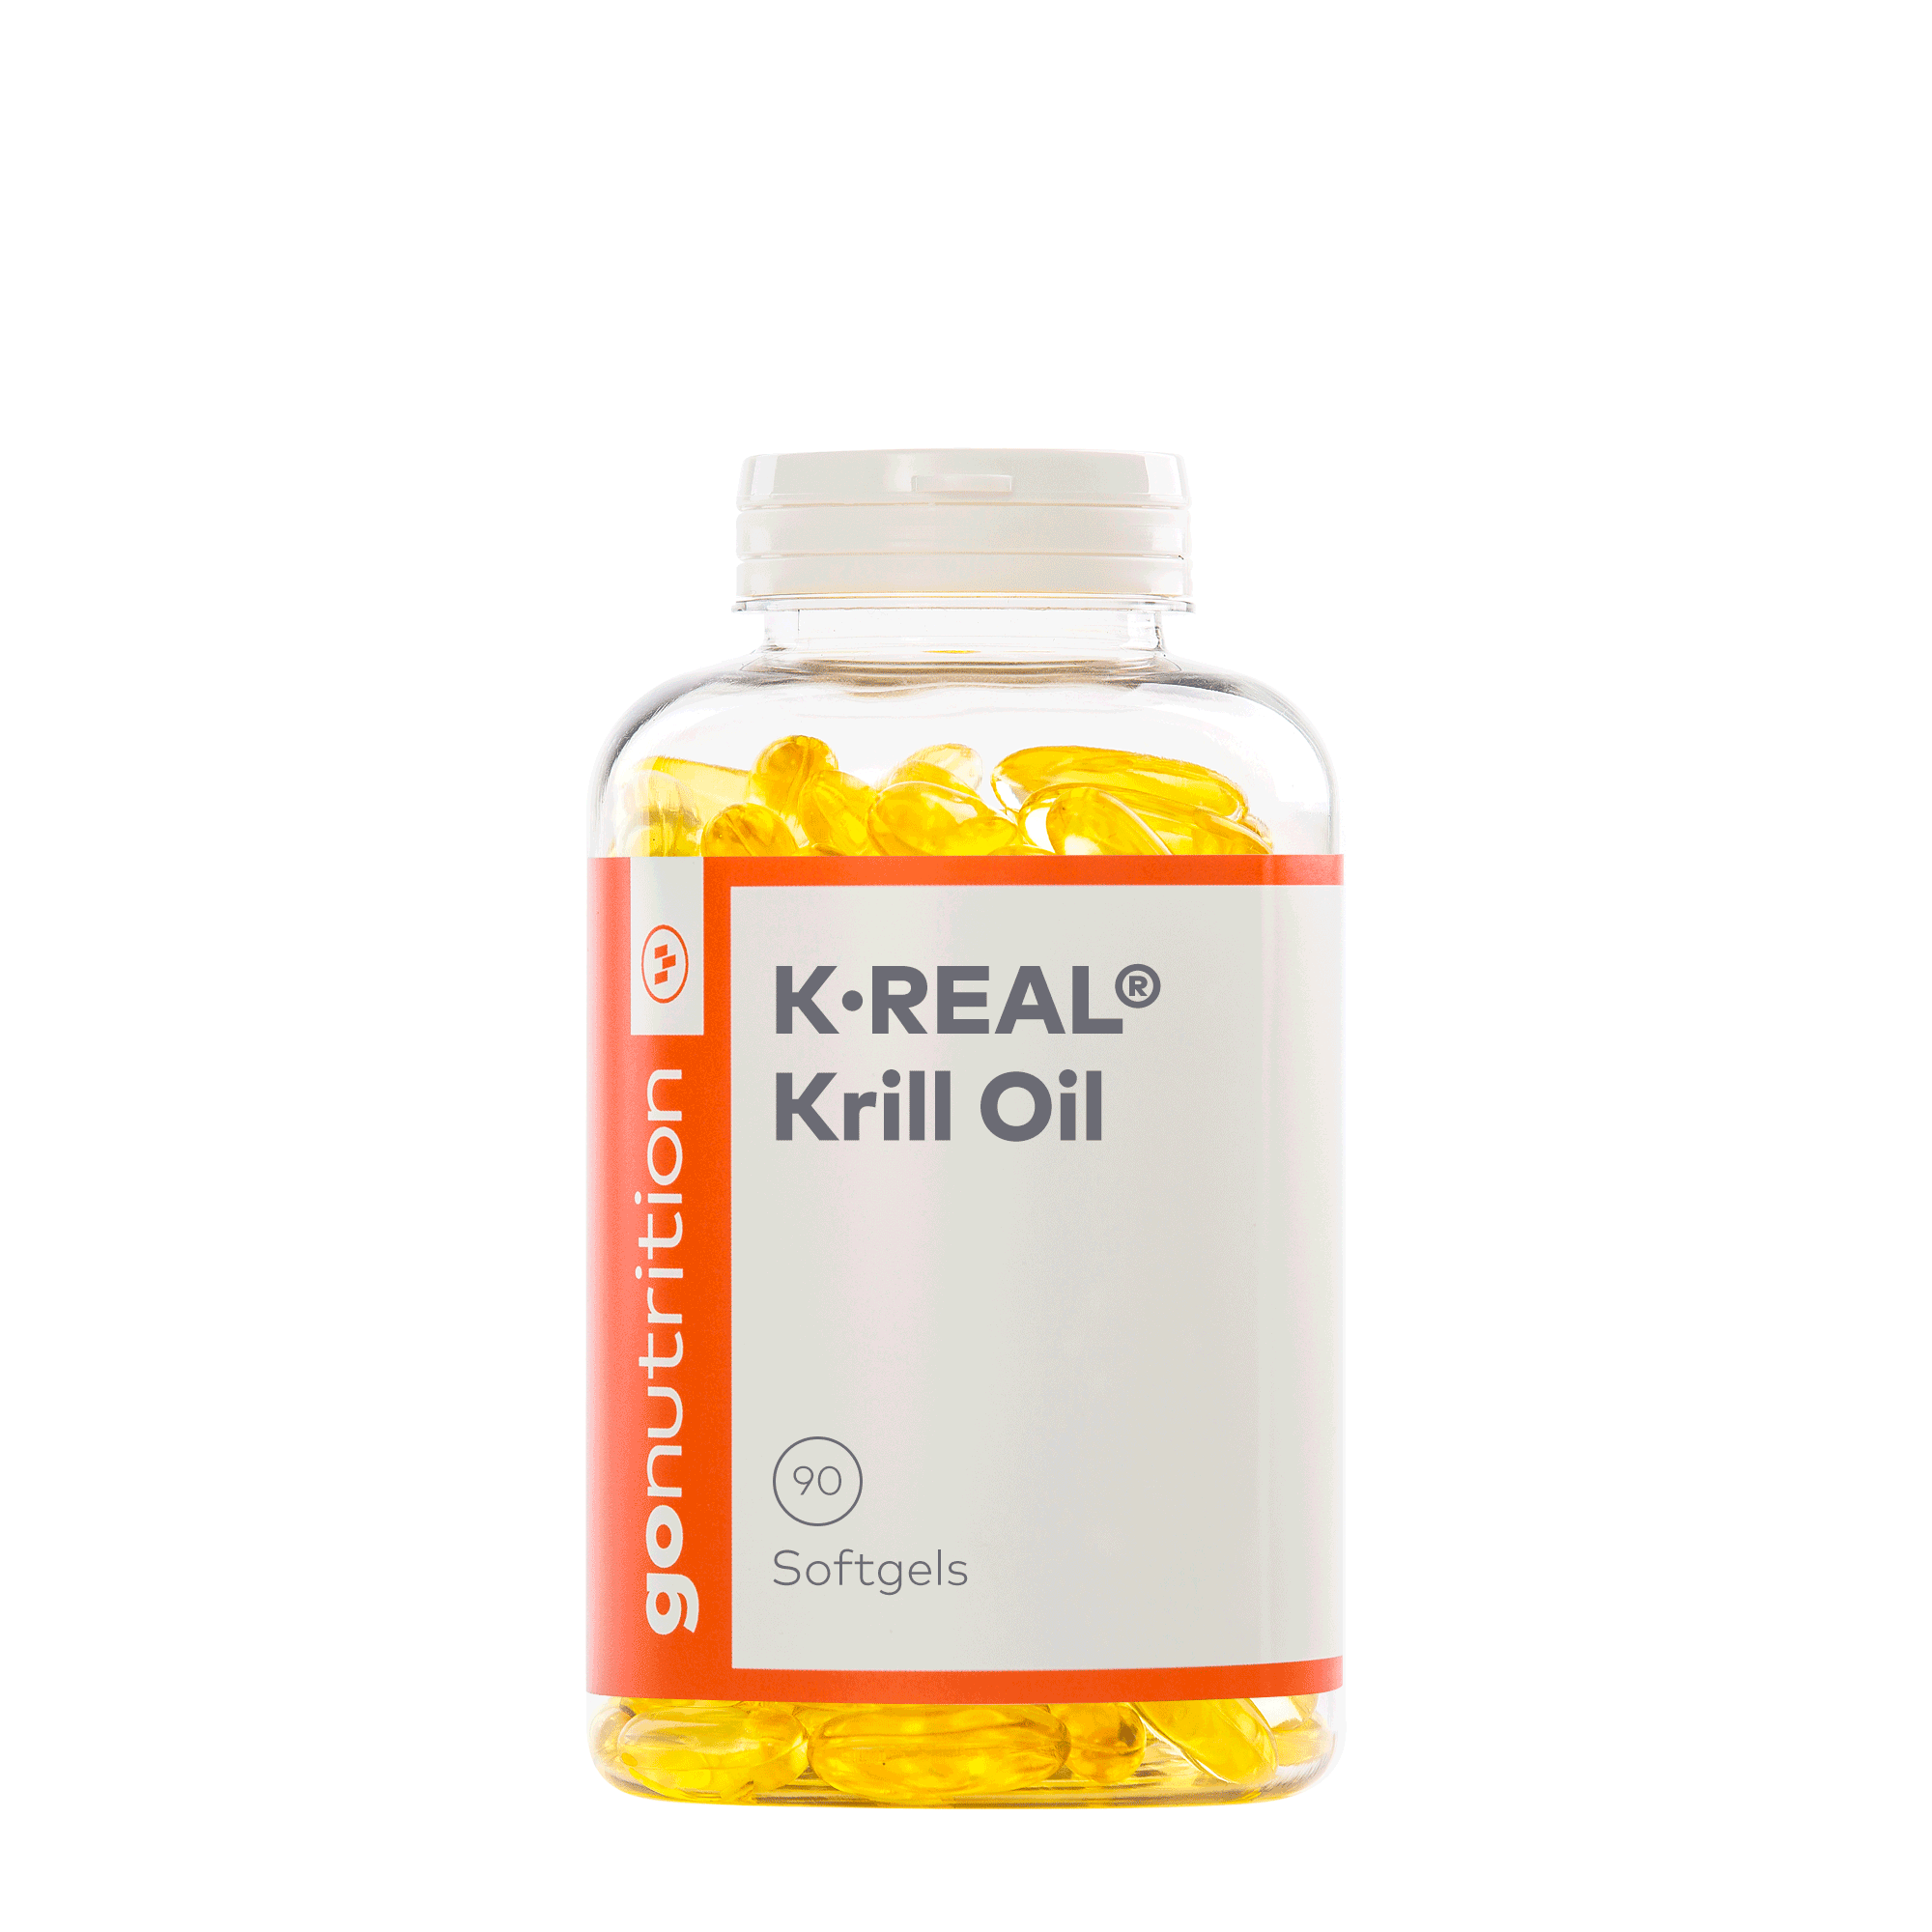 Gonutrition k real krill oil 90 softgels at fitness savvy for Fish oil for weight loss reviews